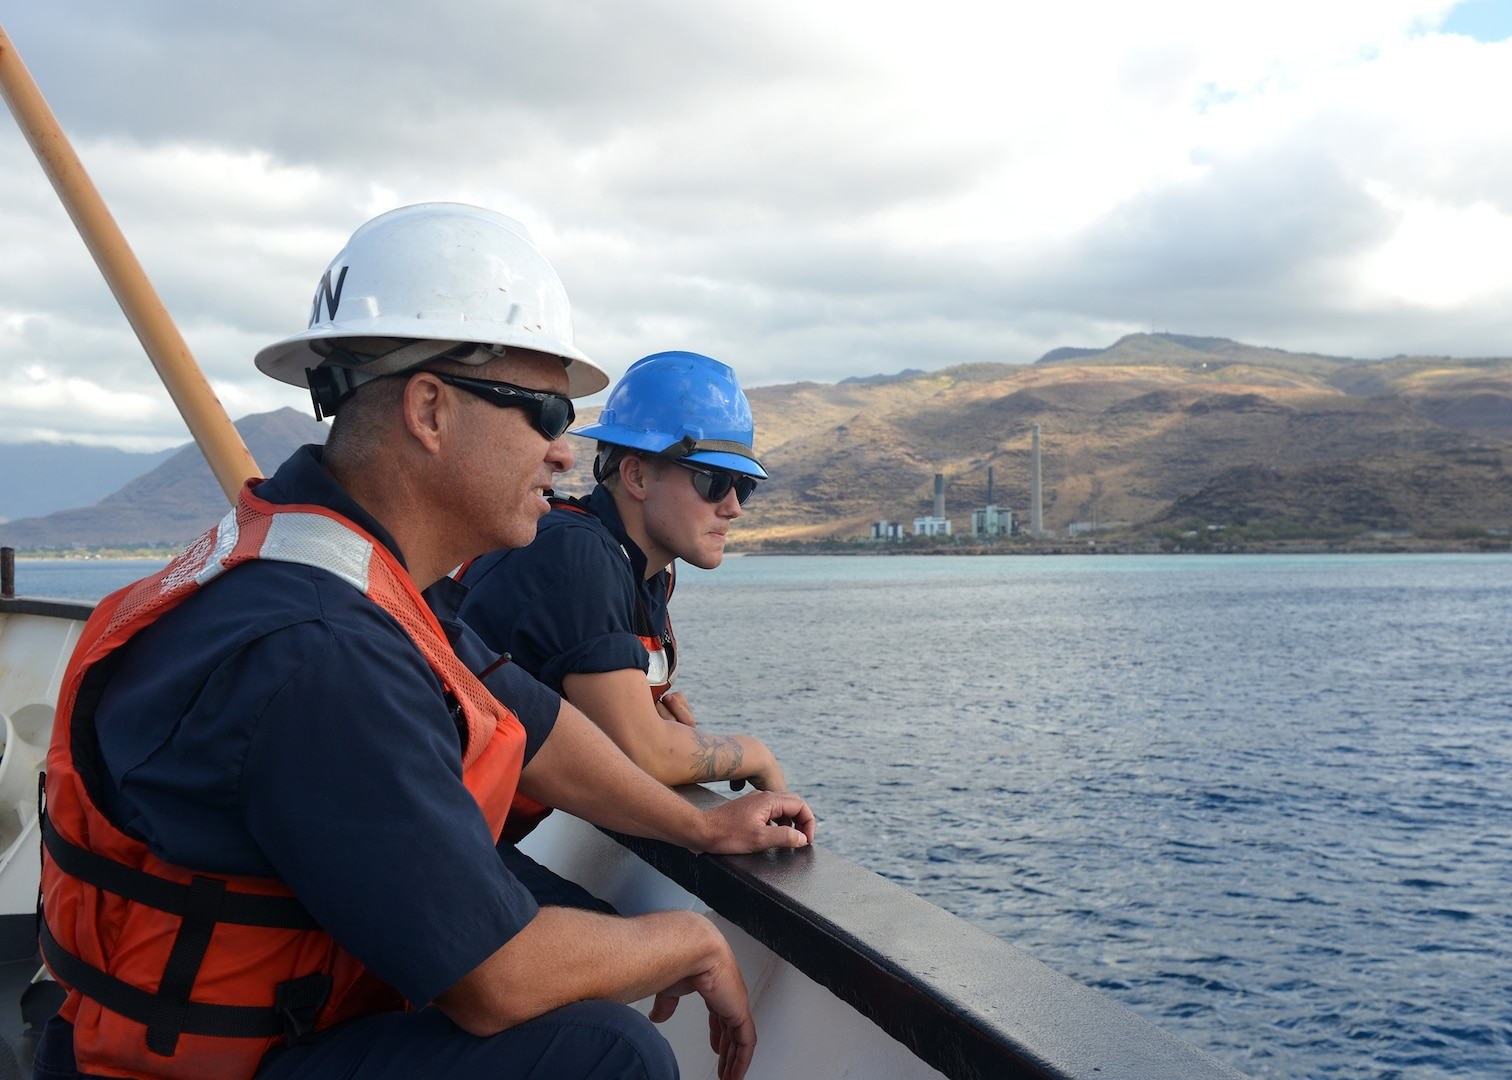 Feature: Coast Guard Cutter Walnut Conducts Maintaining Hawaii's Aids to Navigation Patrol off Hawaii